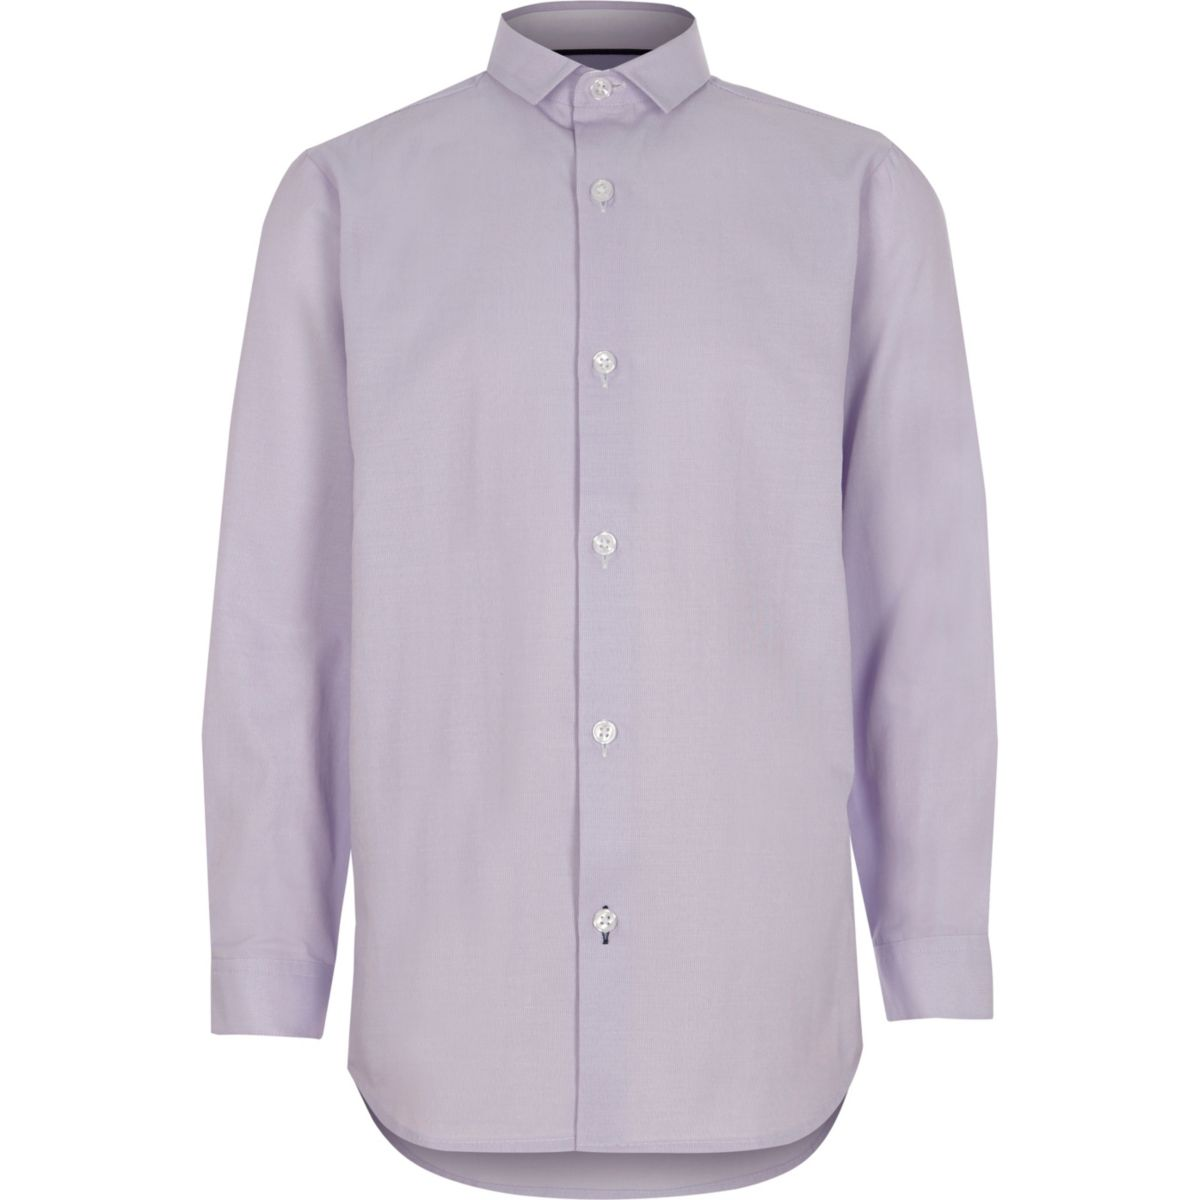 Boys light purple smart shirt